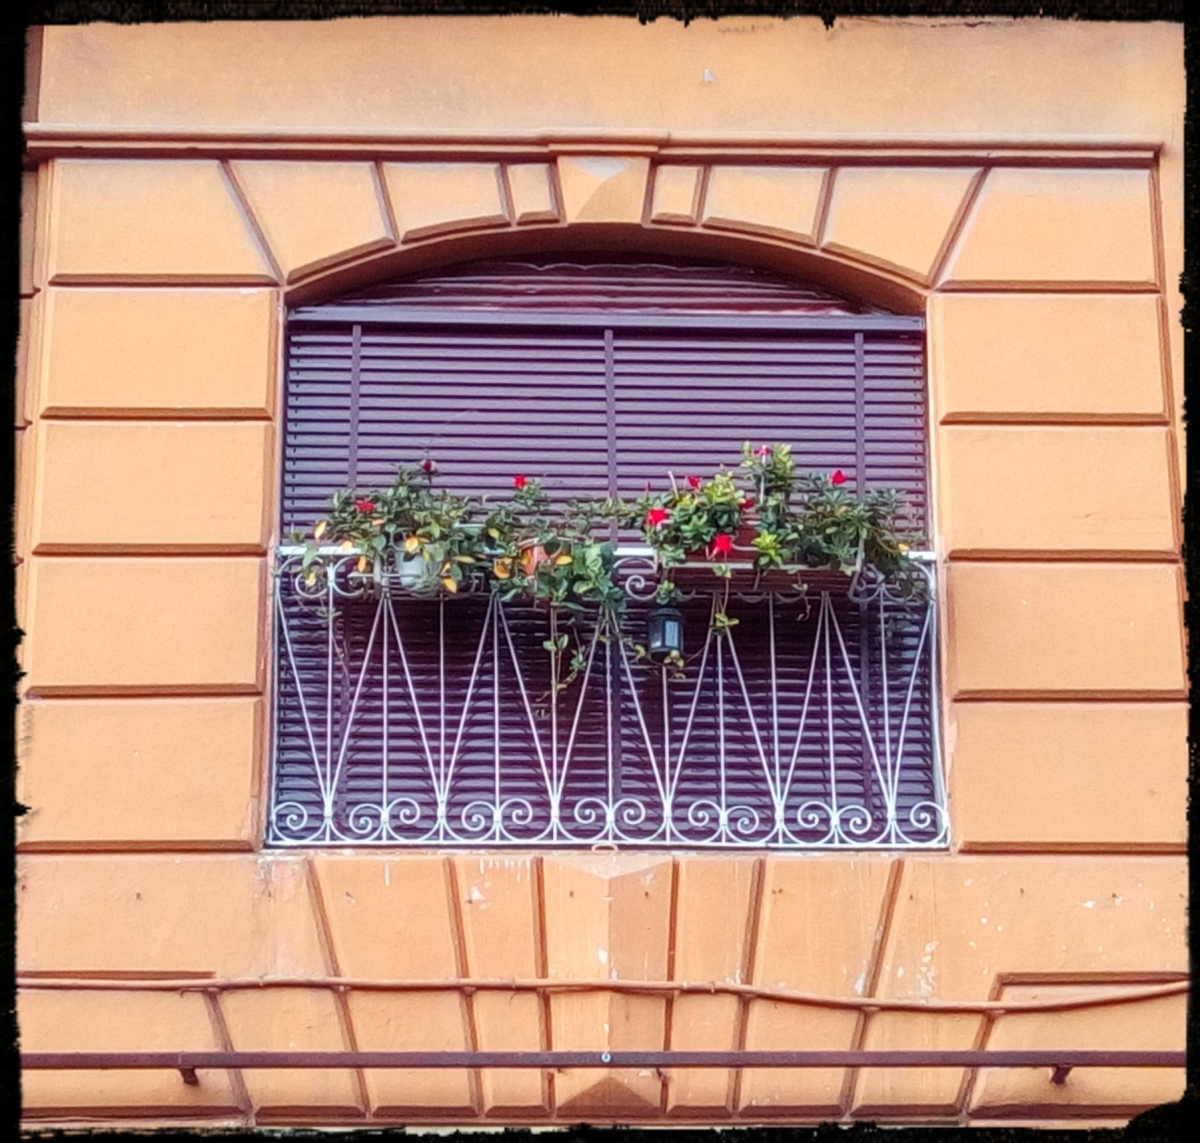 Rome - Windows of Rione Celio